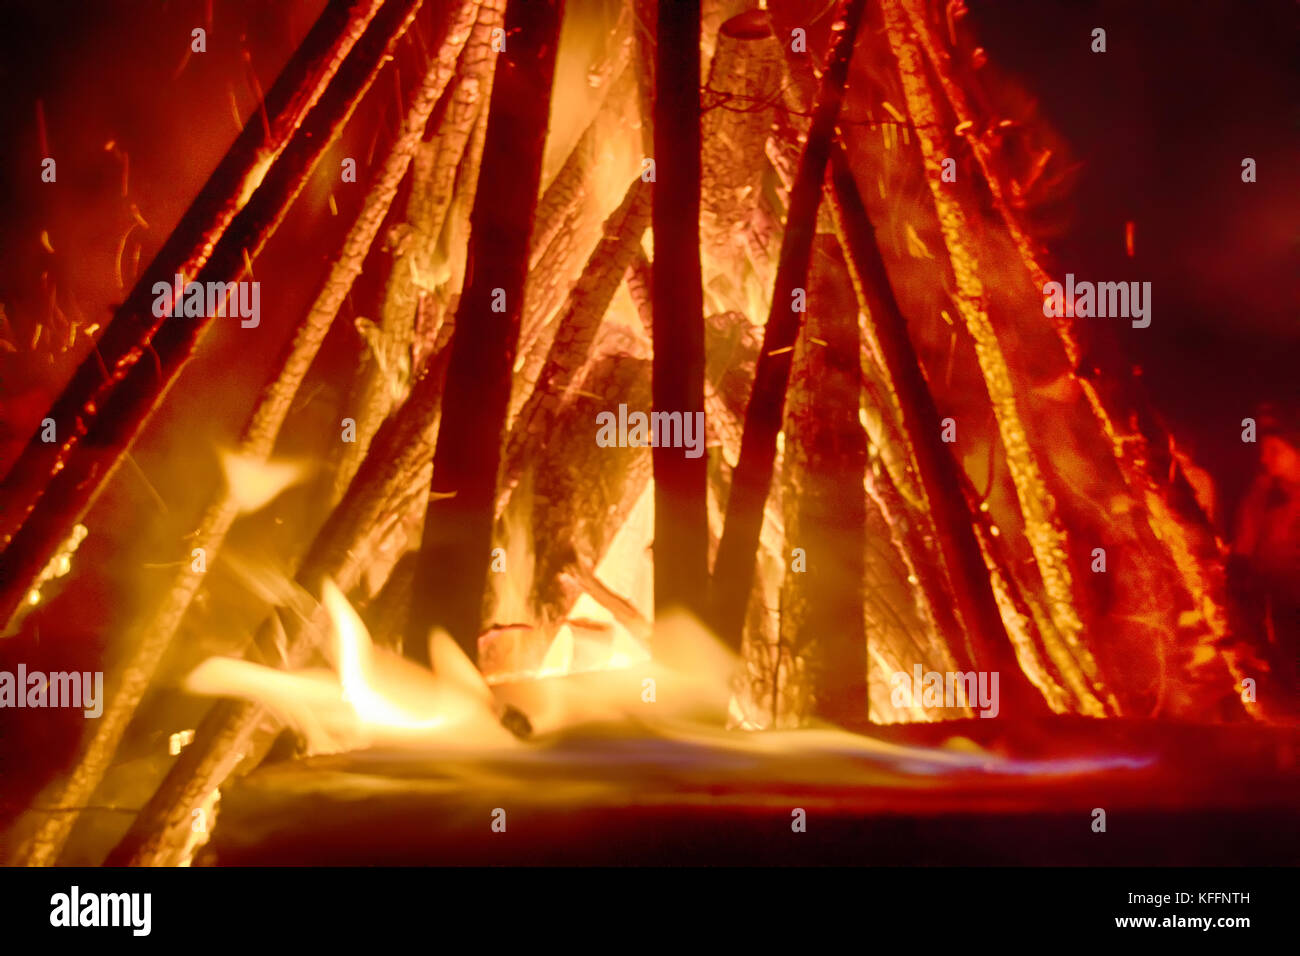 Huge fire at night and young people around. Pagan festival of Walpurgis night: bonfires, dancing wildly, demons, - Stock Image